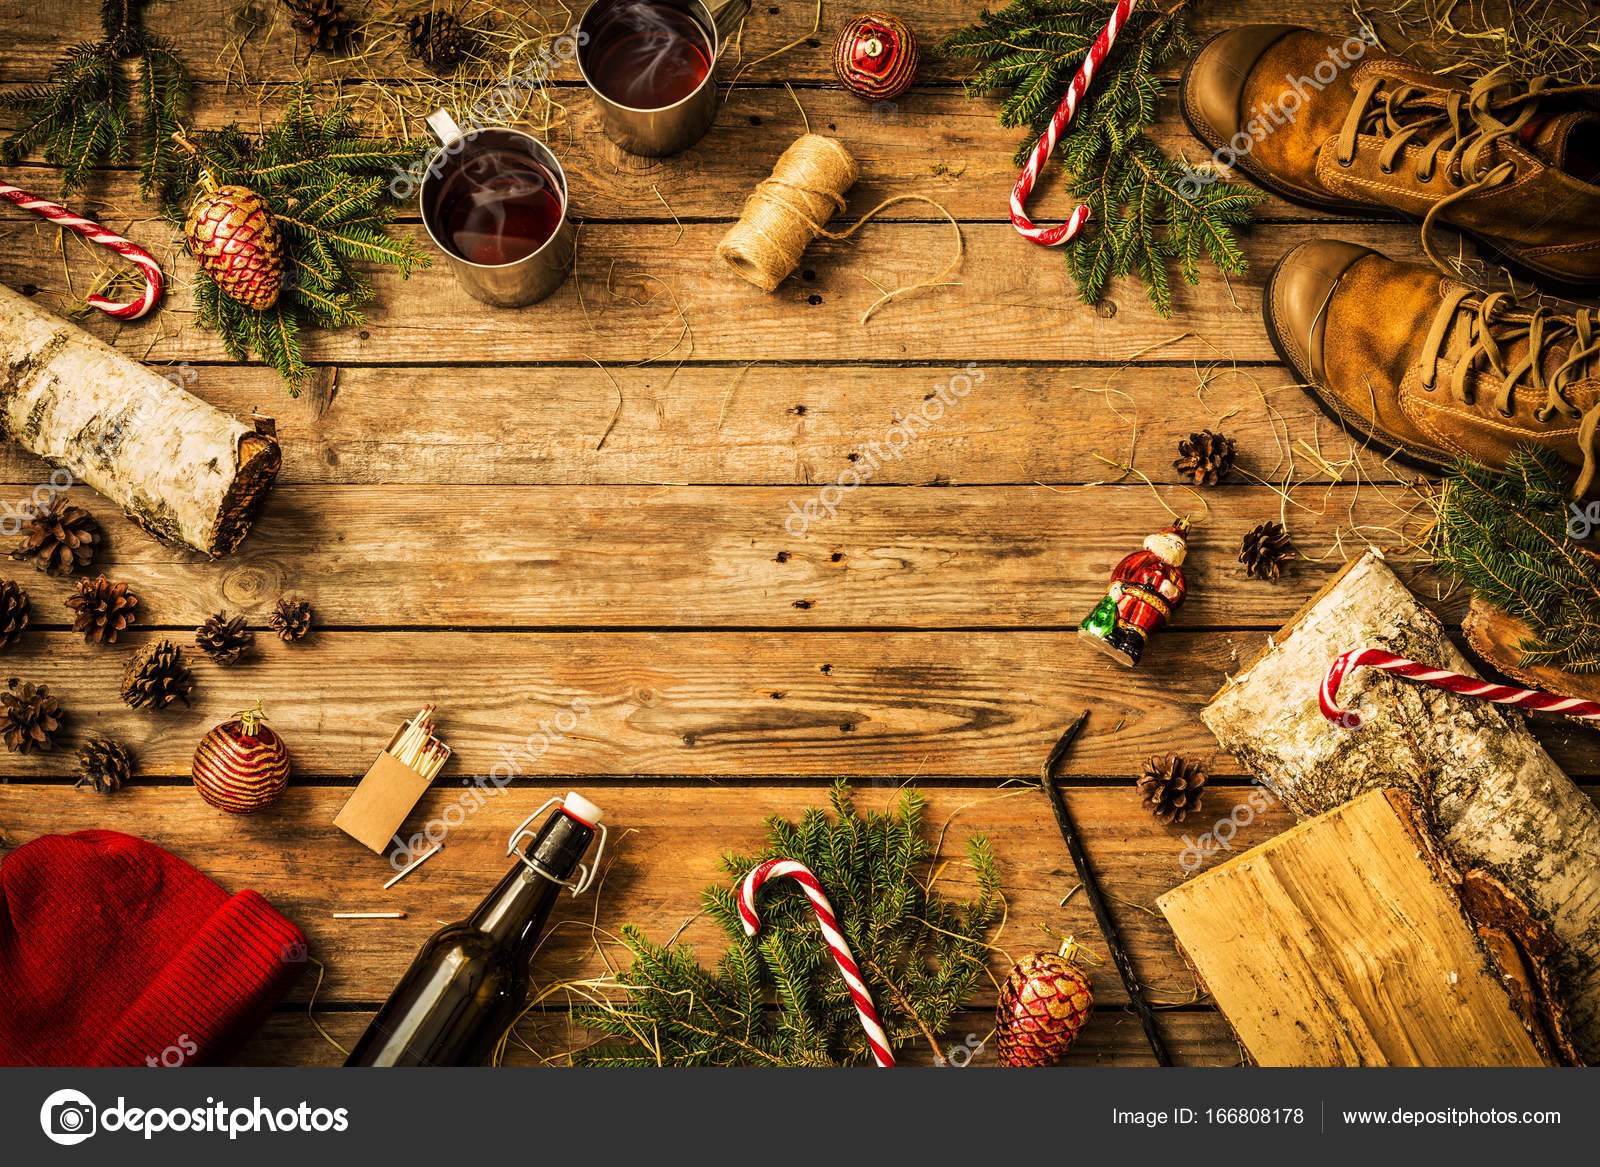 Country Christmas Background.Winter Christmas Weekend In Country Cabin Concept Stock